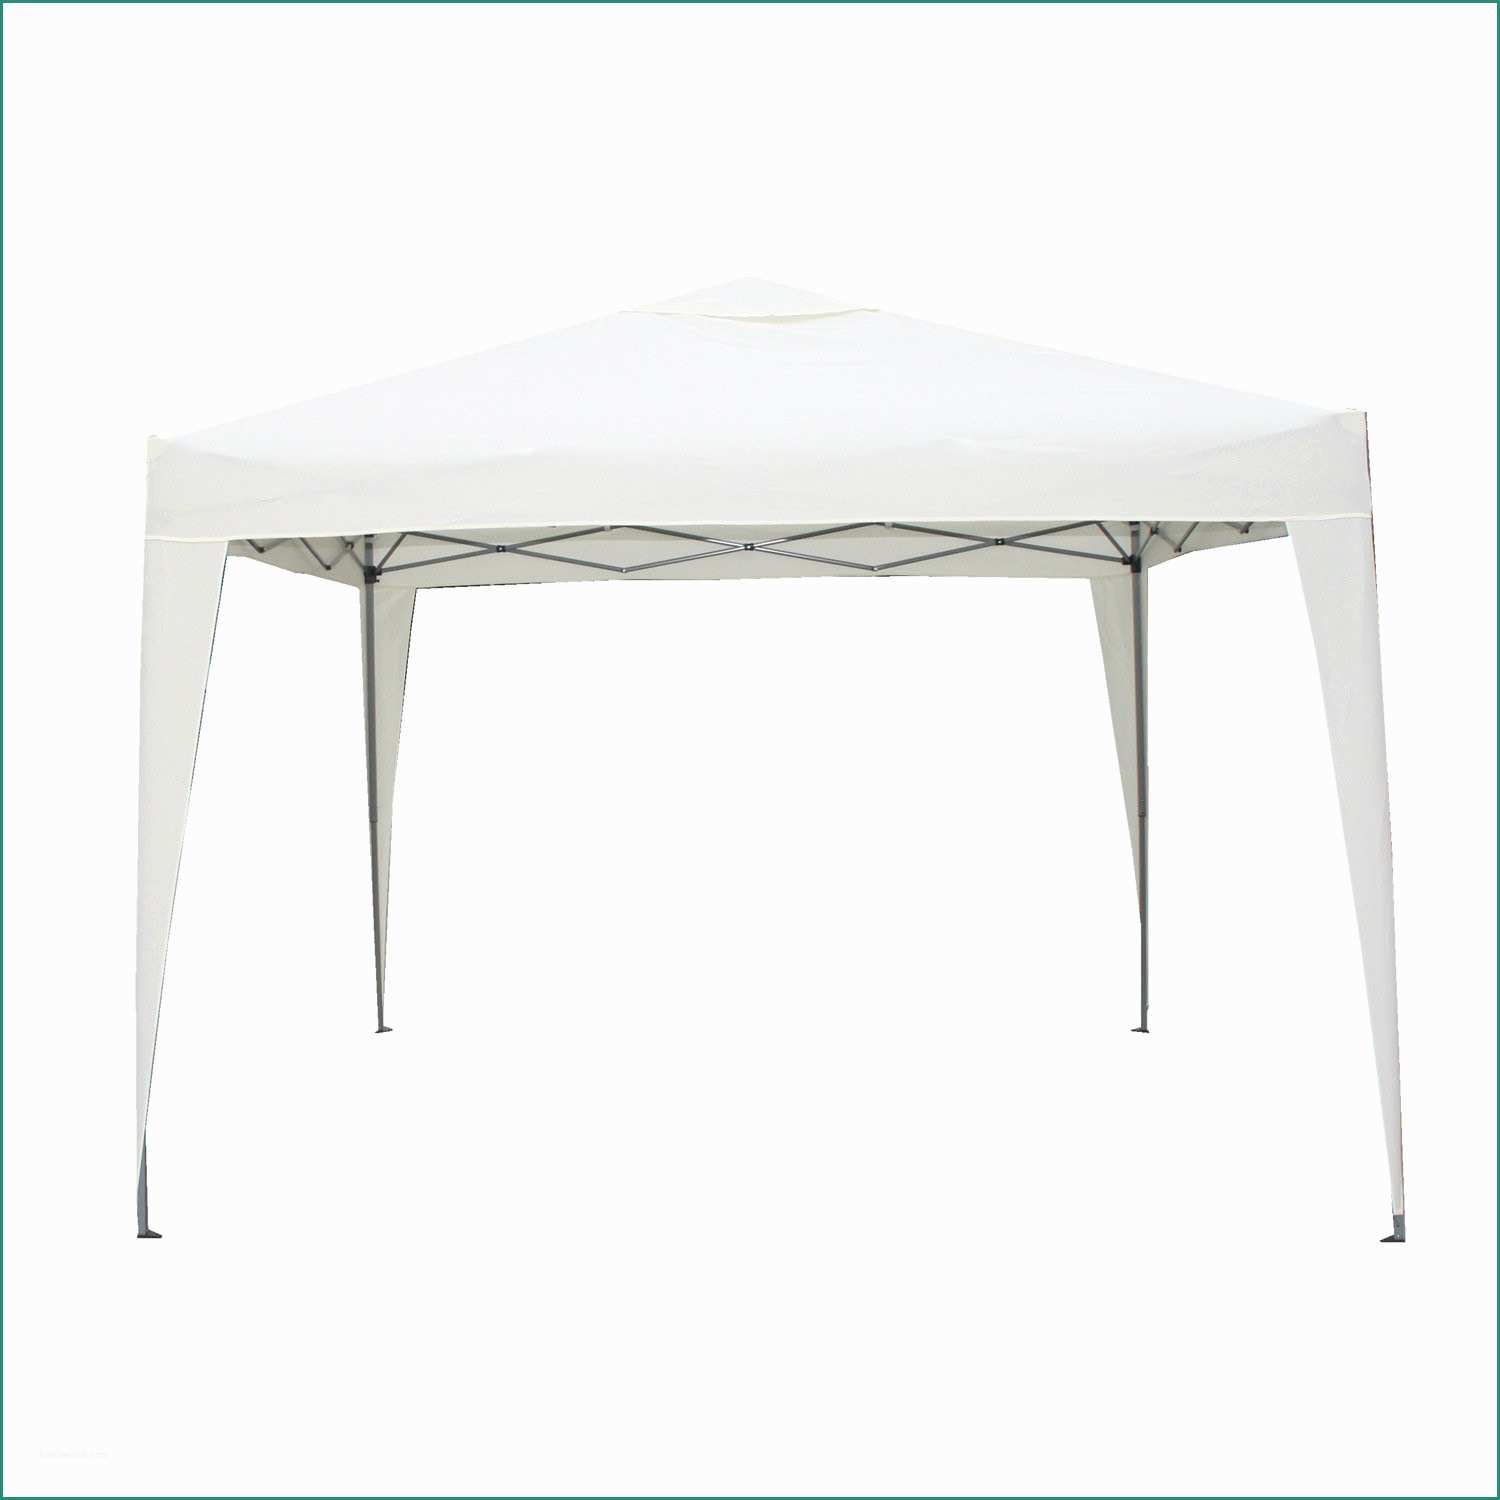 gazebo leroy merlin e table de jardin pliante leroy merlin unique s leroy merlin di gazebo leroy merlin